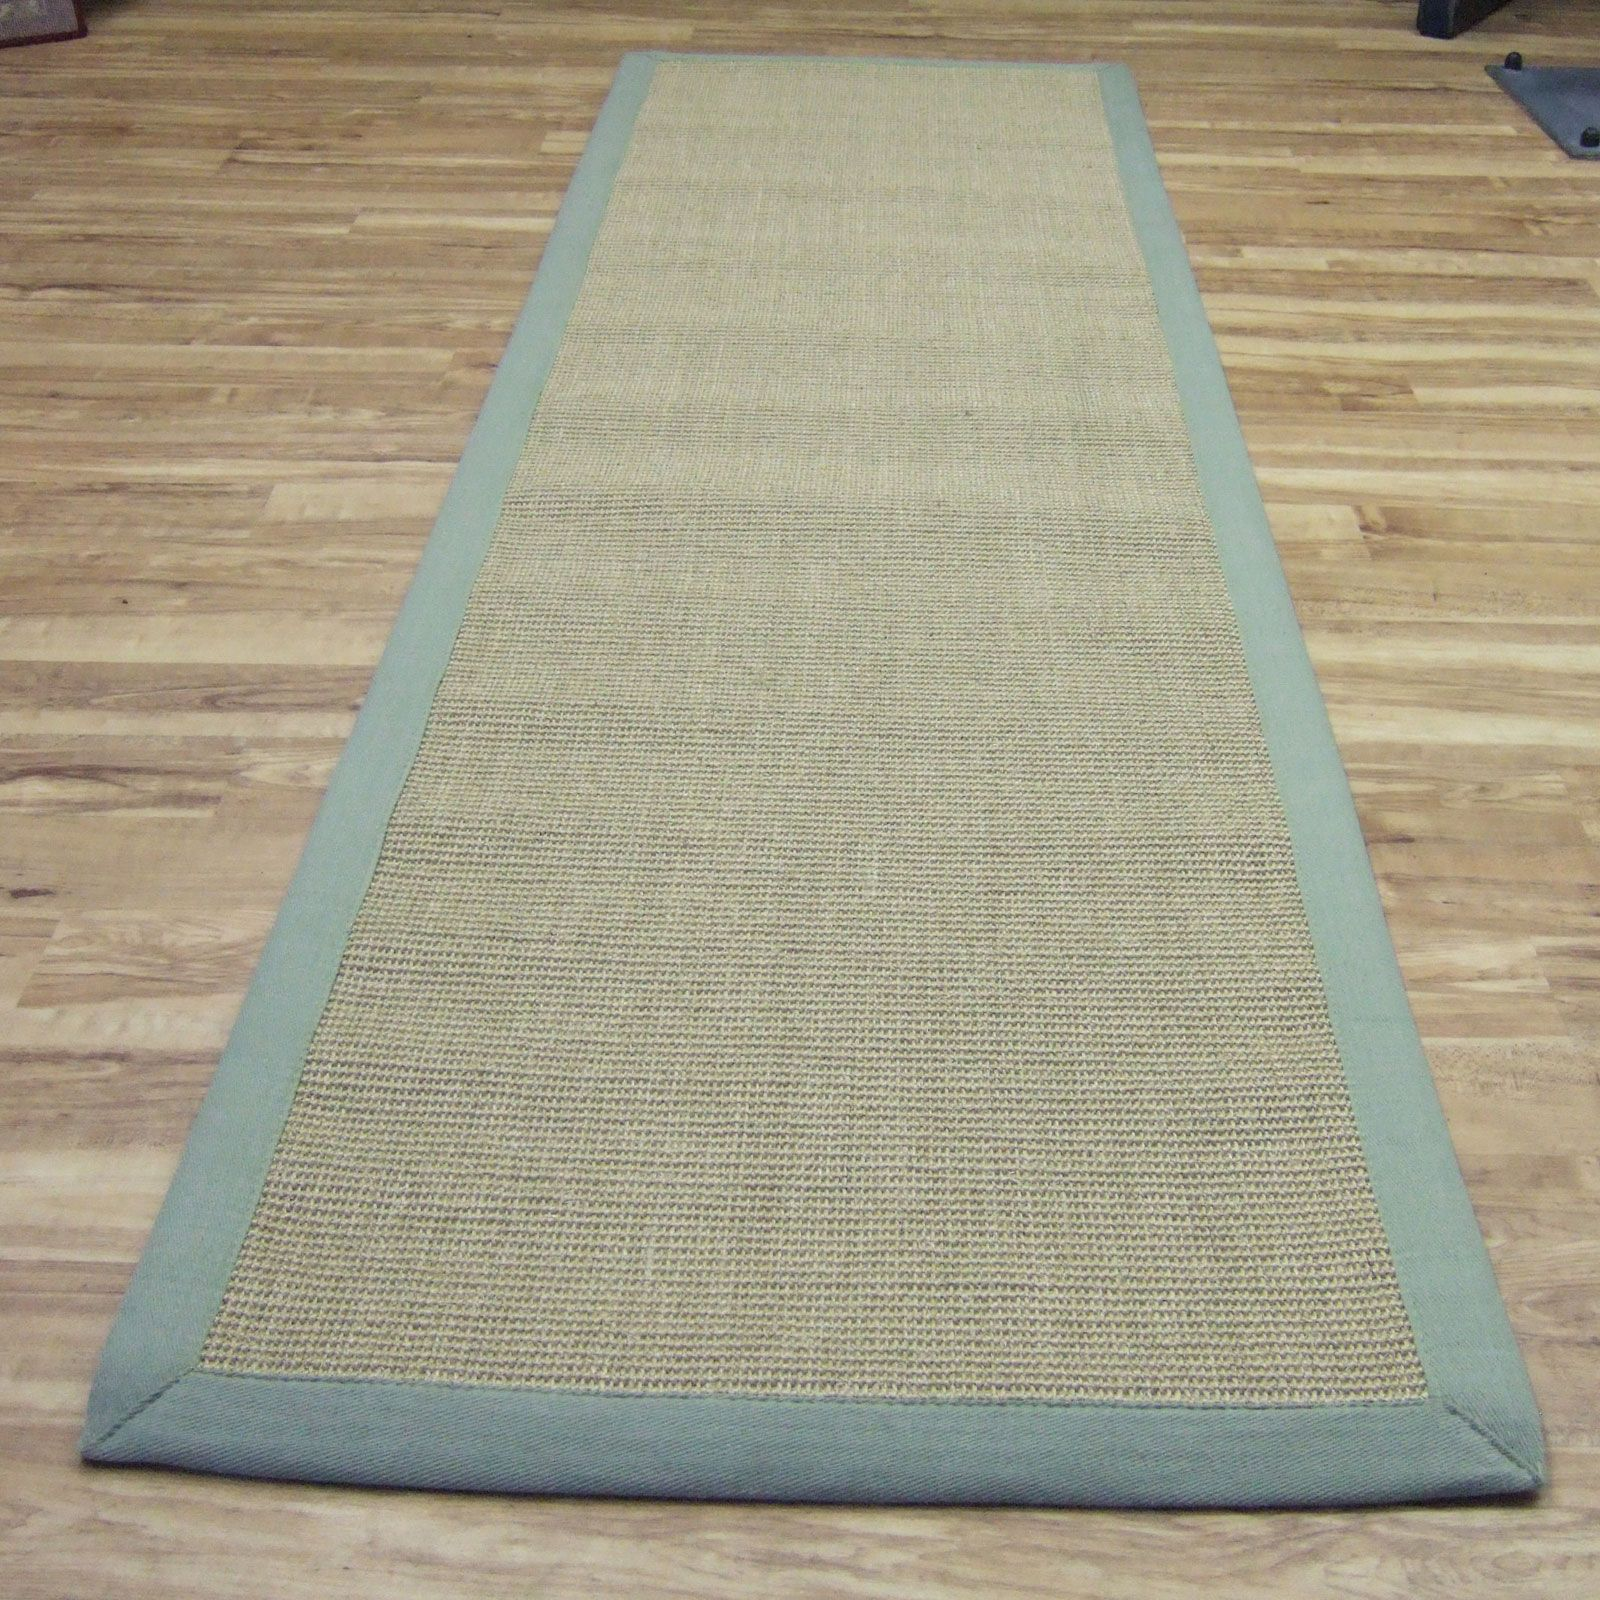 Sisal Hallway Runners In Linen With A Sage Green Border68x240cm Runner Sage Green Rug Rug Runners Hallway Runner